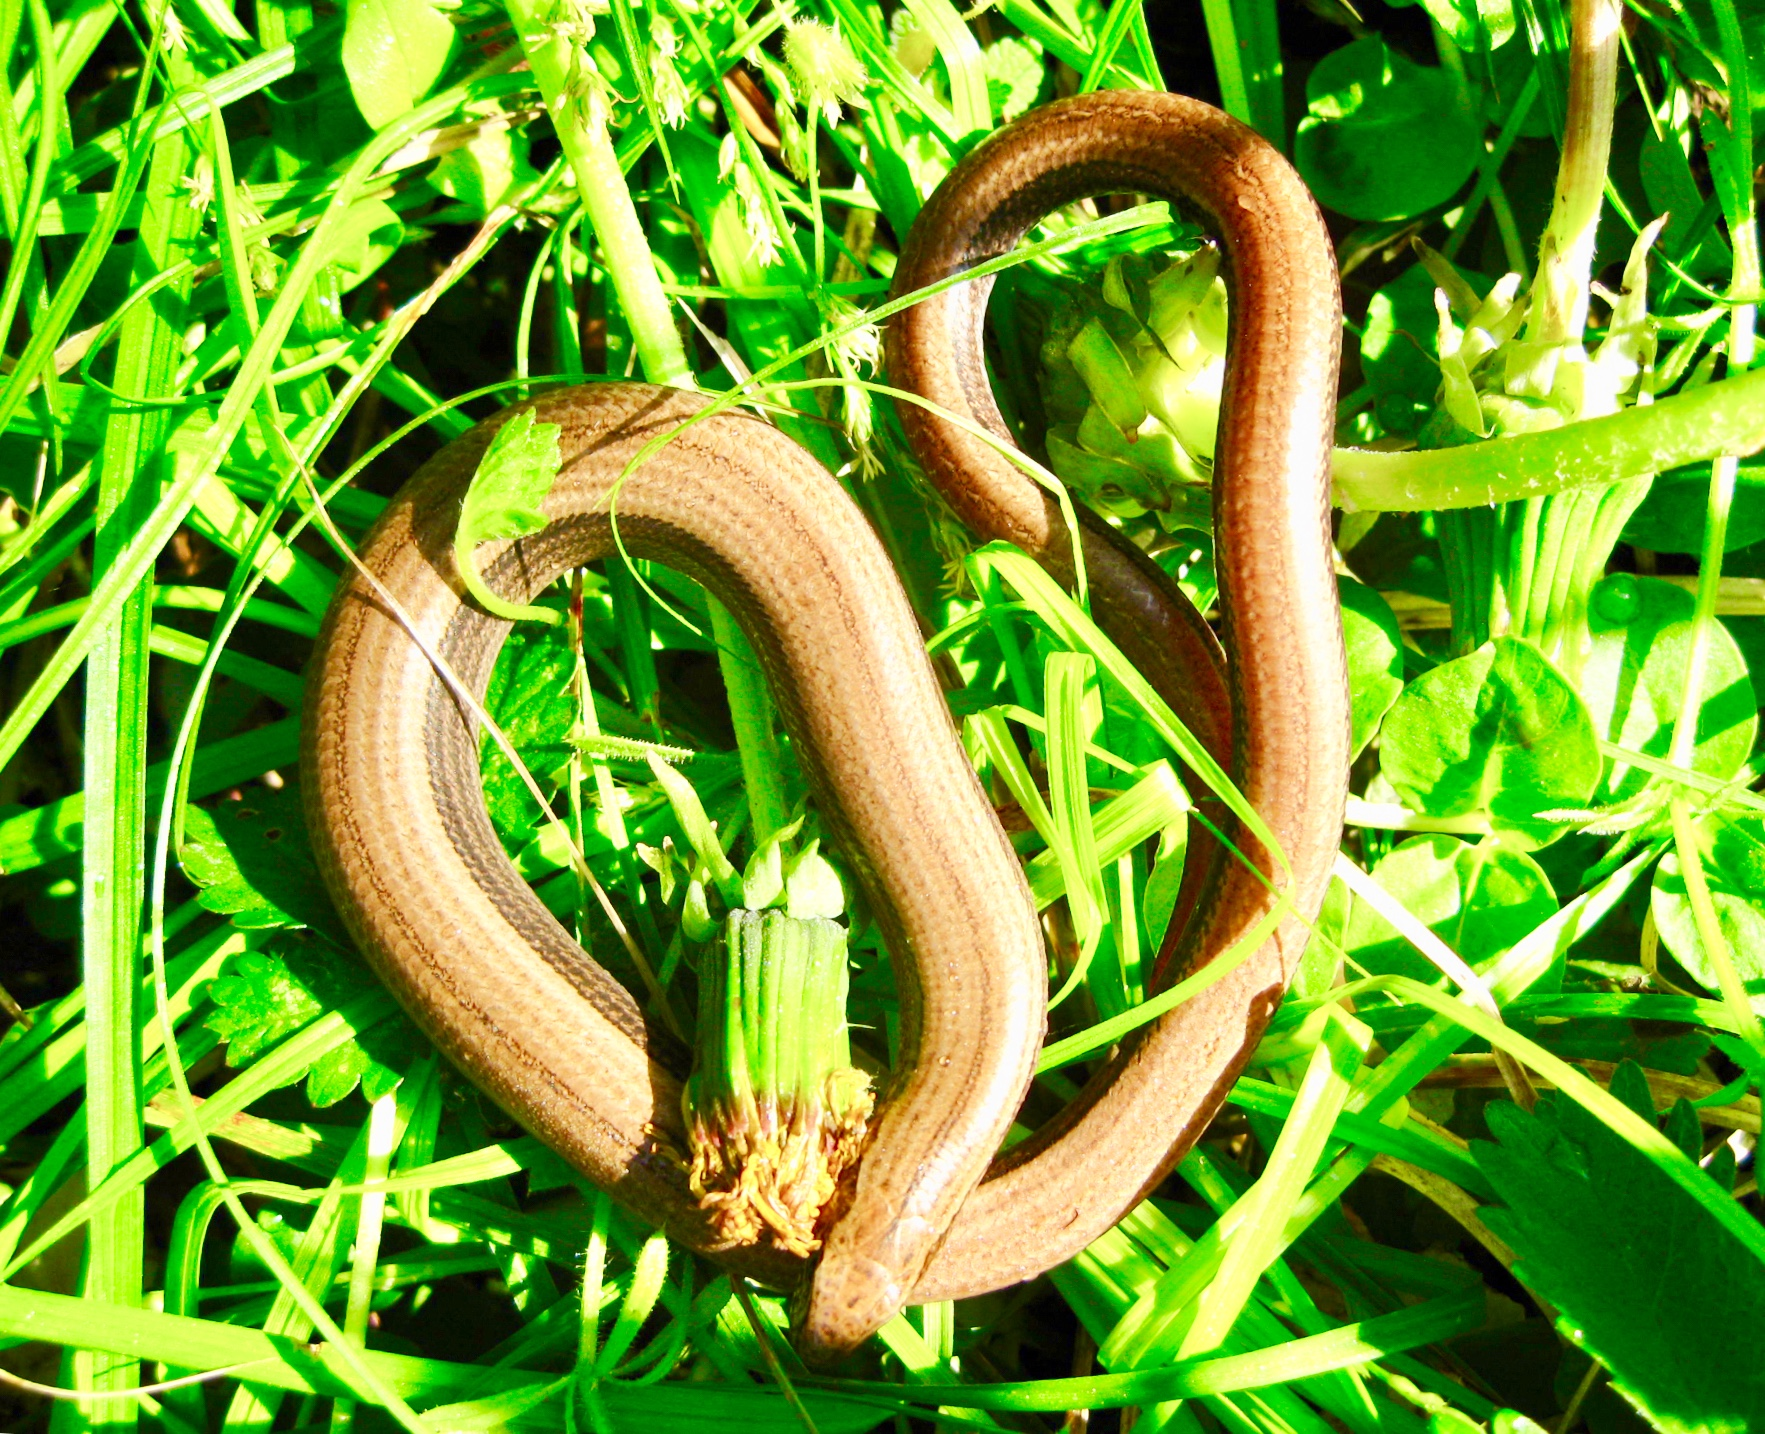 A basking slow worm  Anguis fragilis  (photo by Matt Cook)